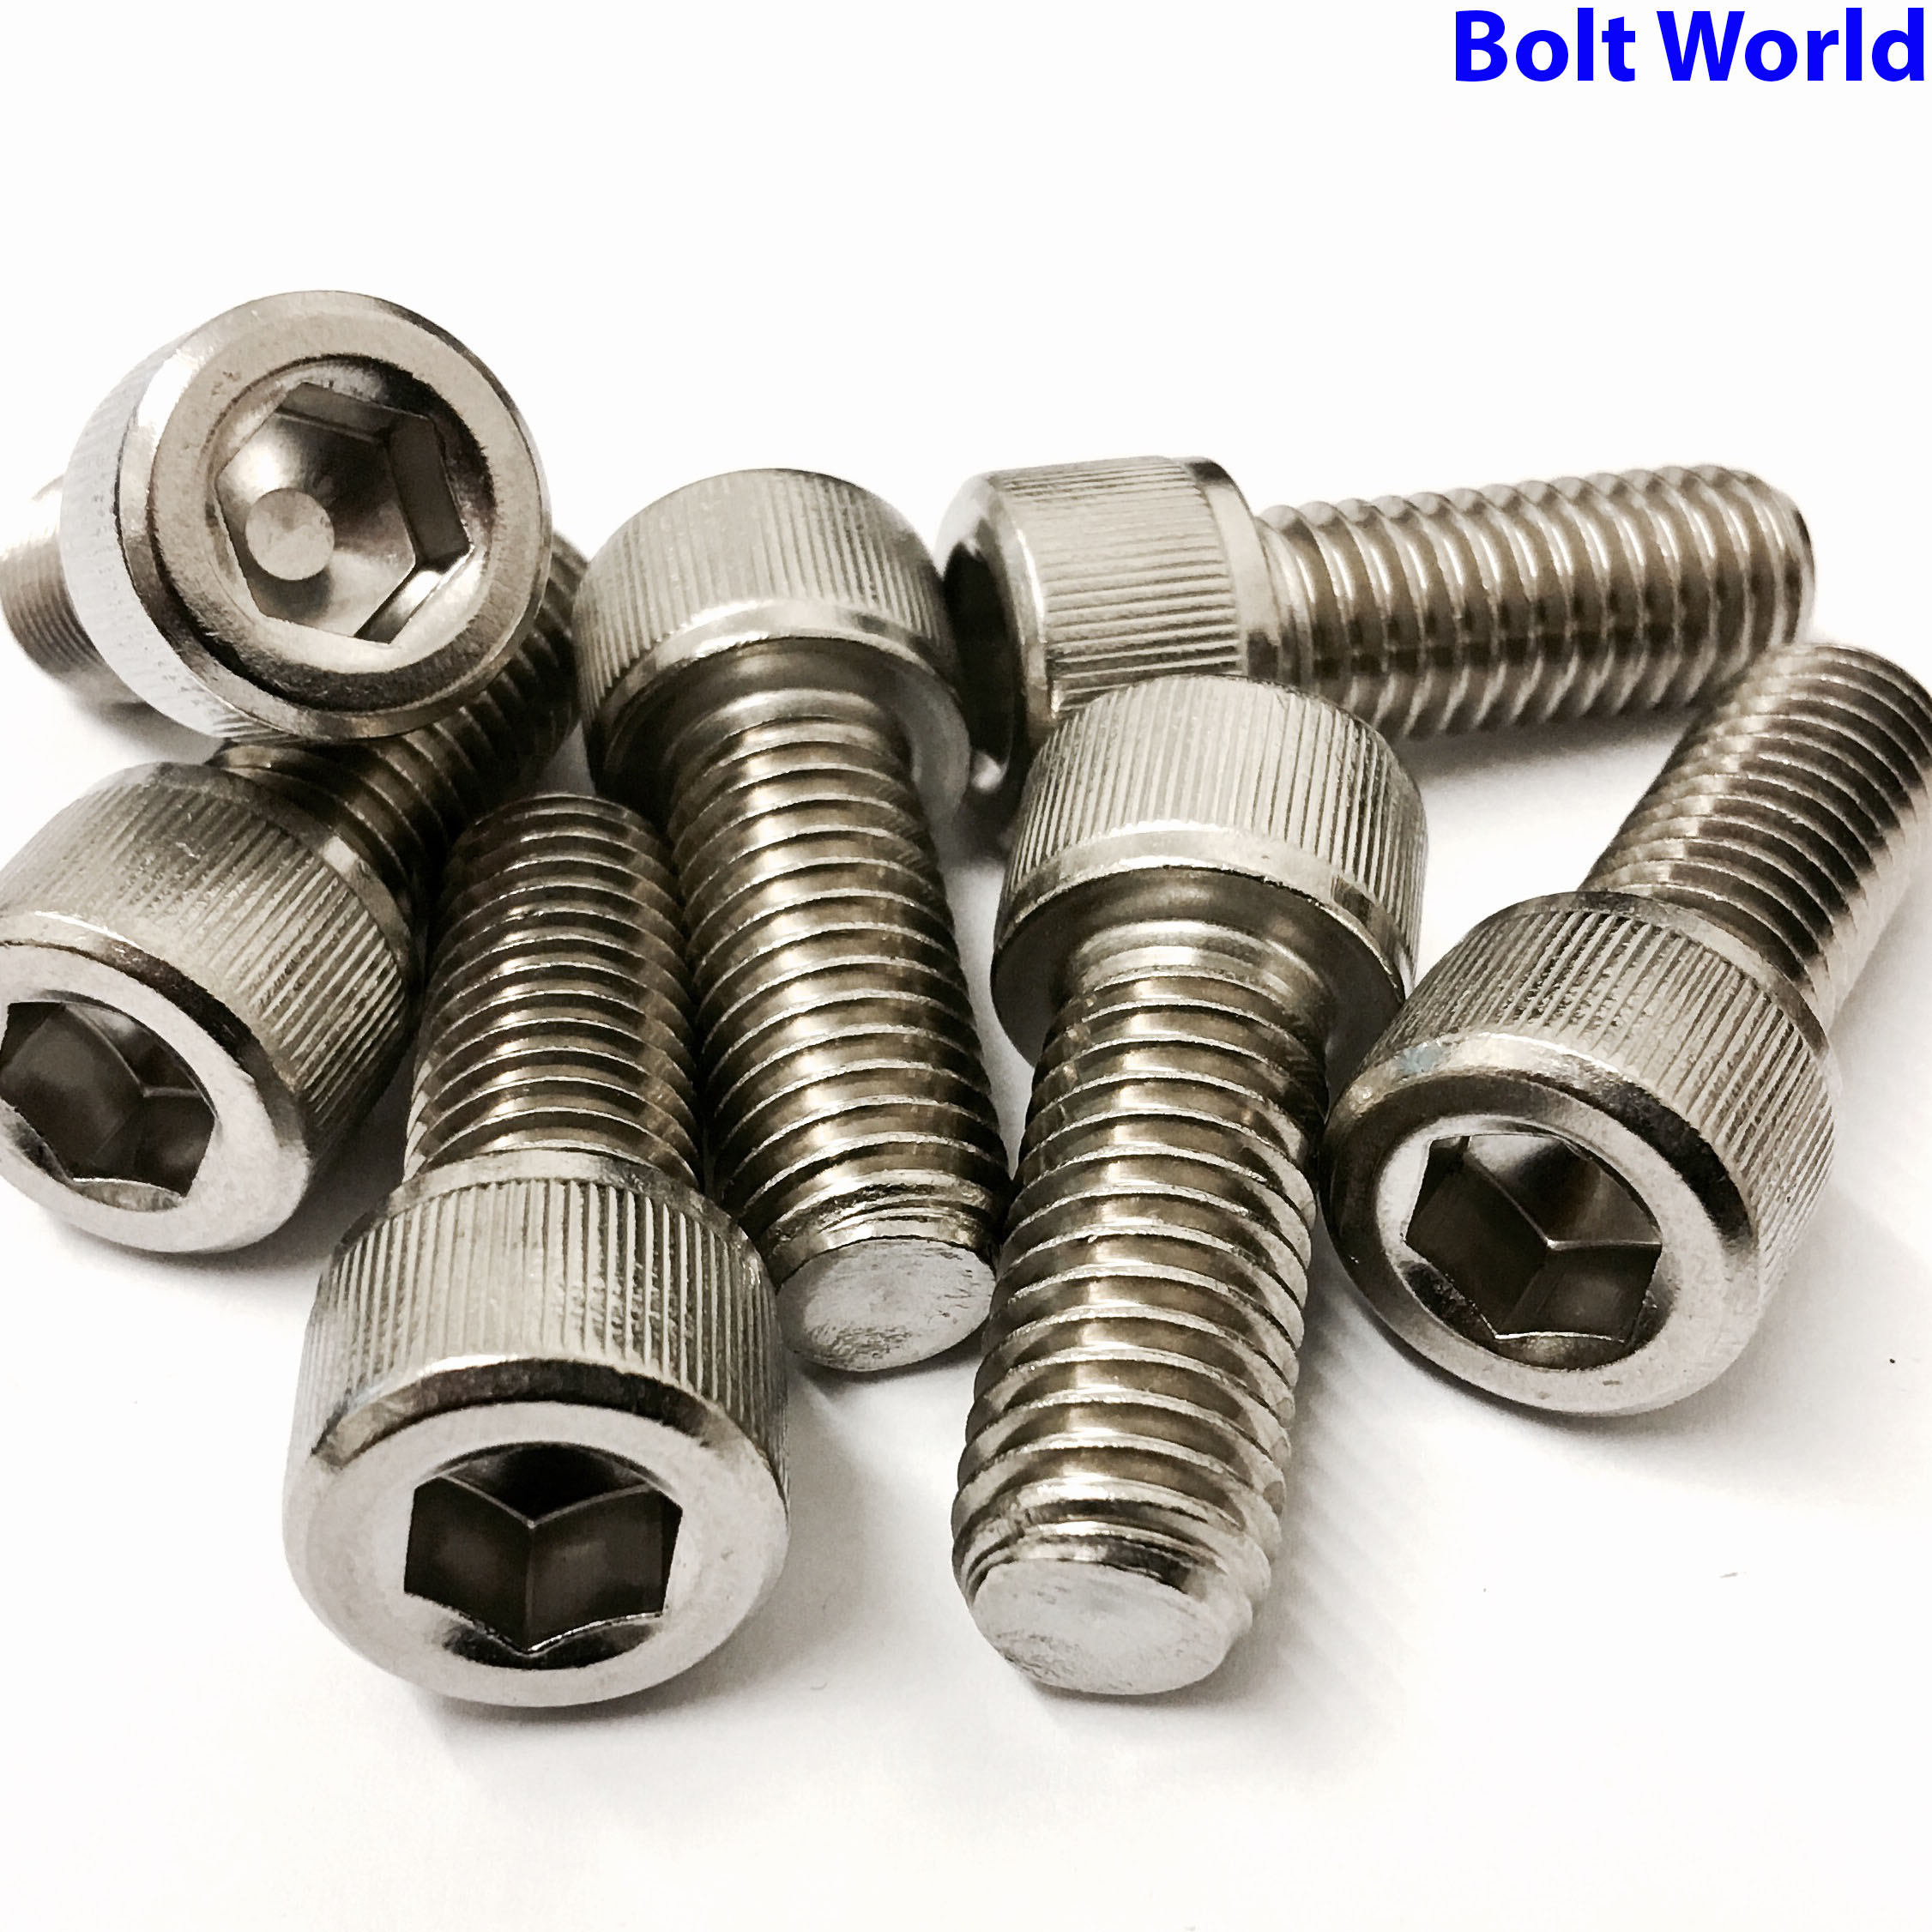 Unc a stainless steel hexagon socket cap screws allen key